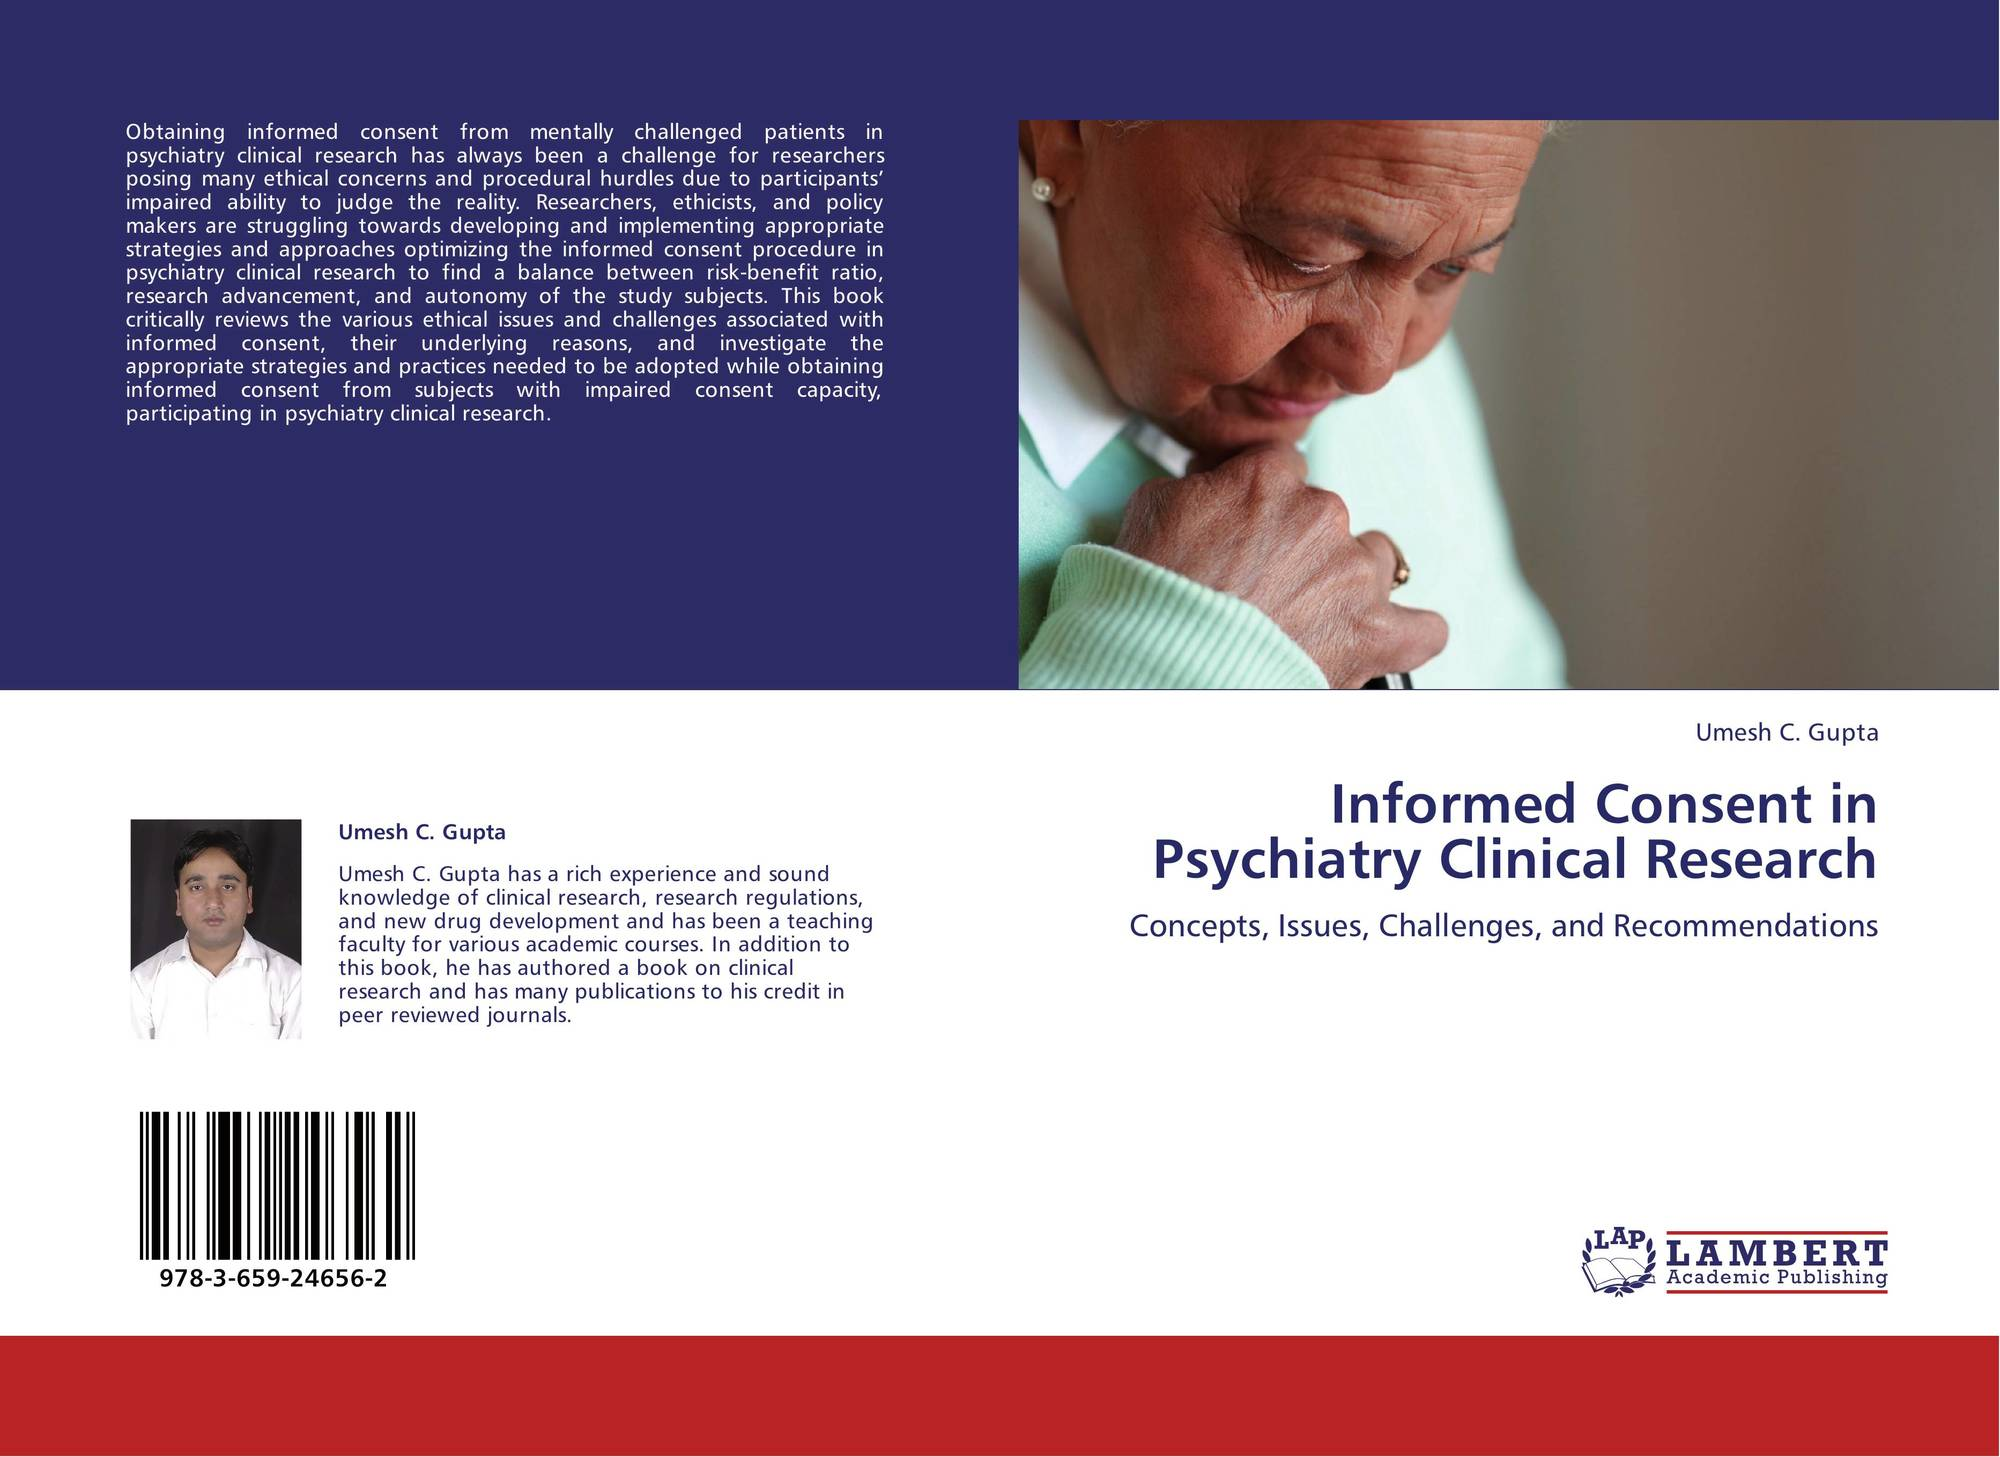 Informed Consent in Psychiatry Clinical Research, 978-3-659-24656-2